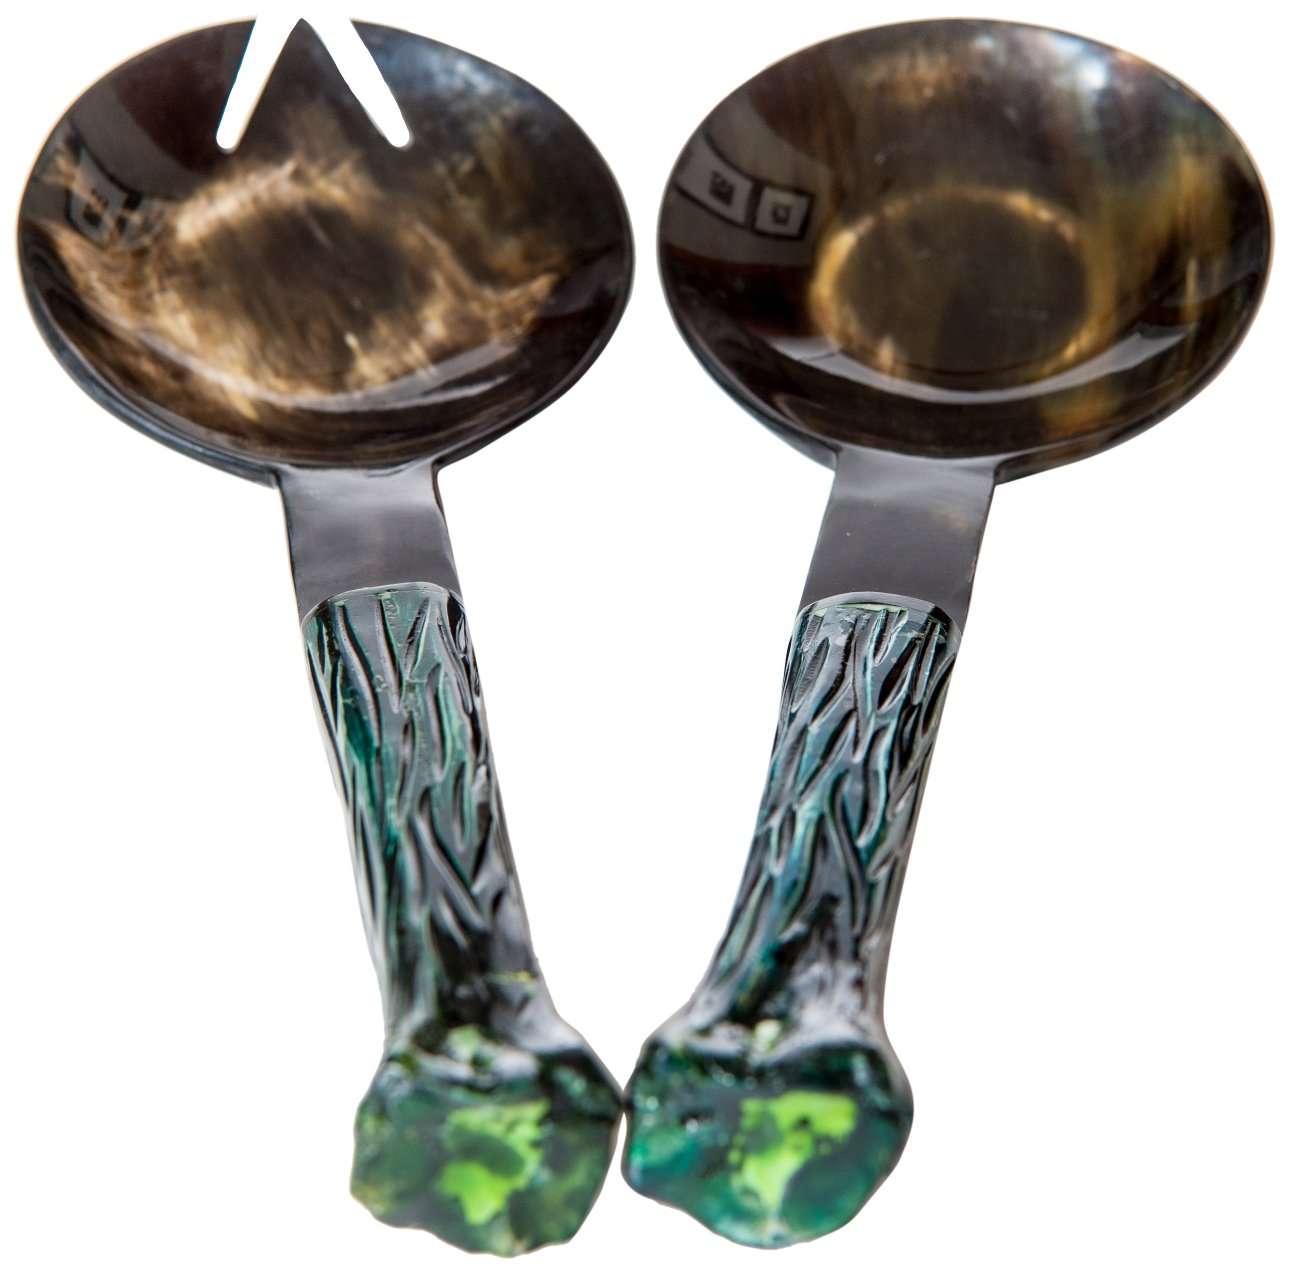 Abigails Ribbed Handled Horn Salad Servers, 13.5 by 4.5 by 2.5-Inch, Green